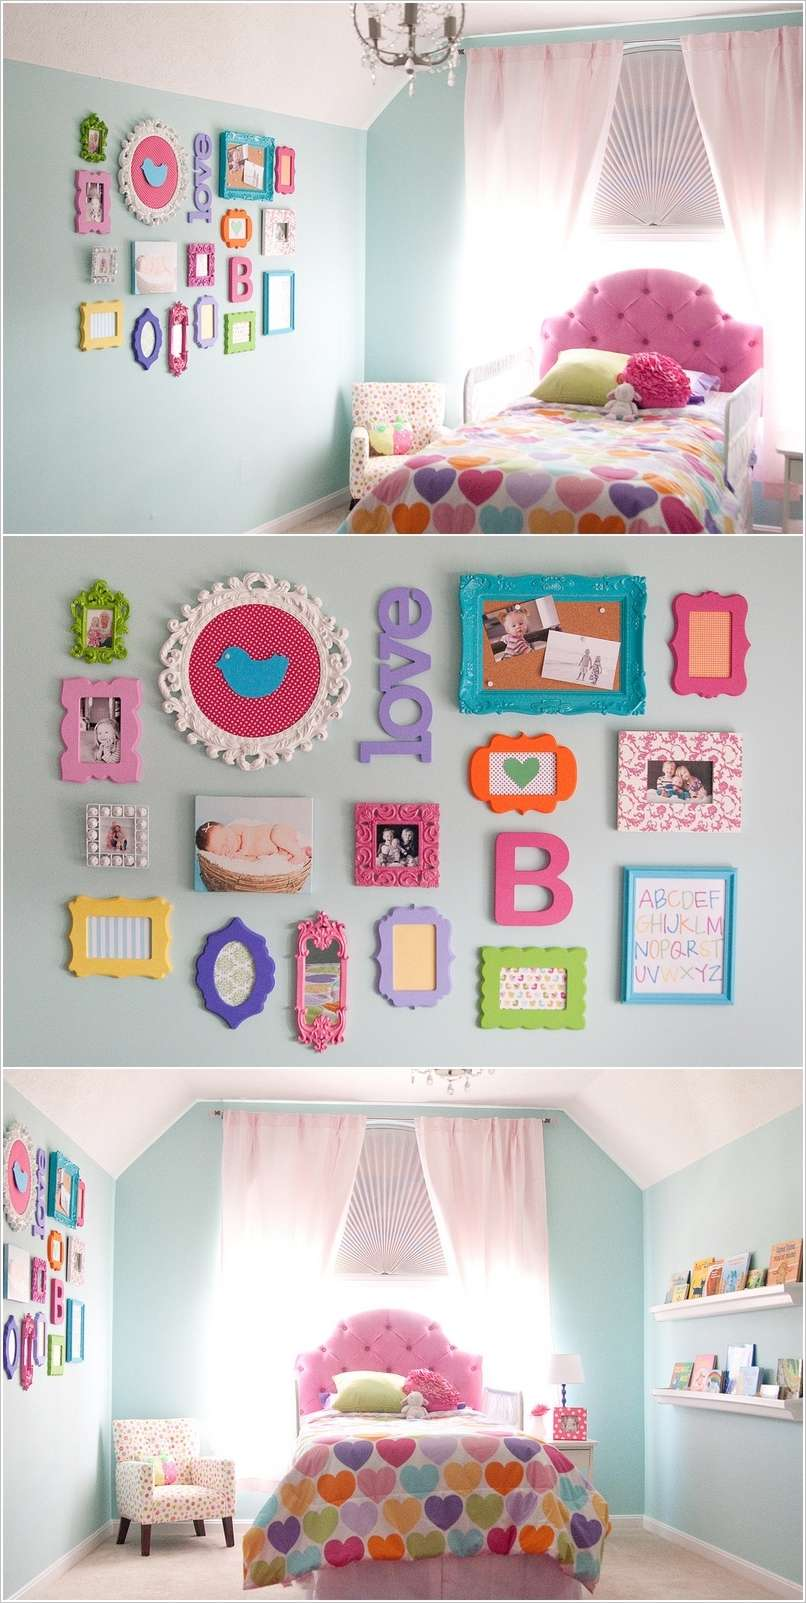 10 cute ideas to decorate a toddler girl 39 s room - Decorating little girls room ...